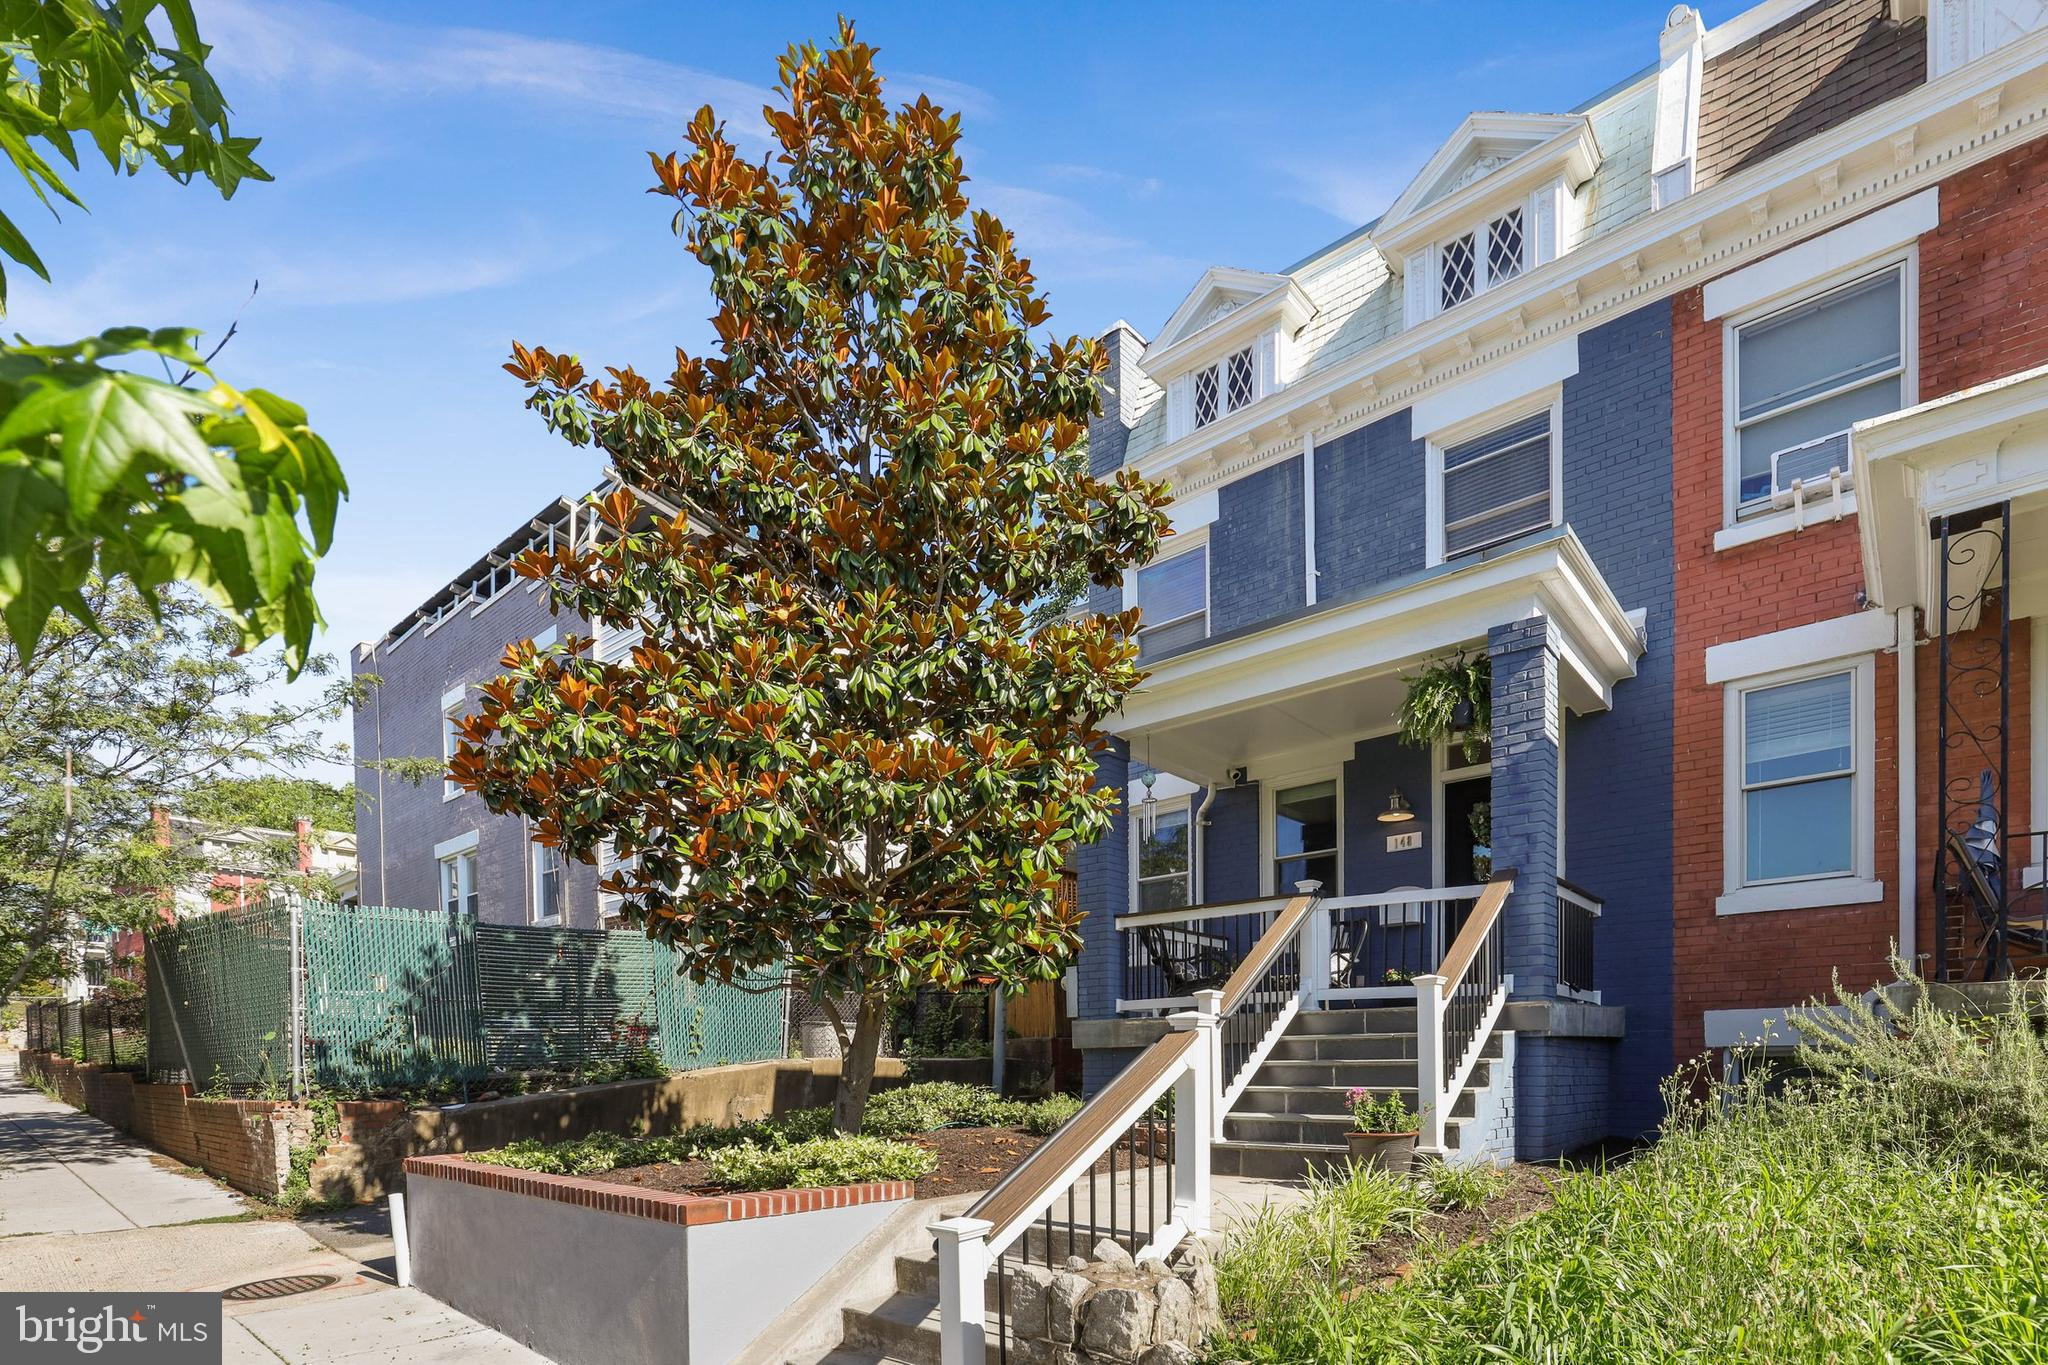 Classic 1913 end unit rowhome in Eckington on a quiet one way street. Property has been restored and